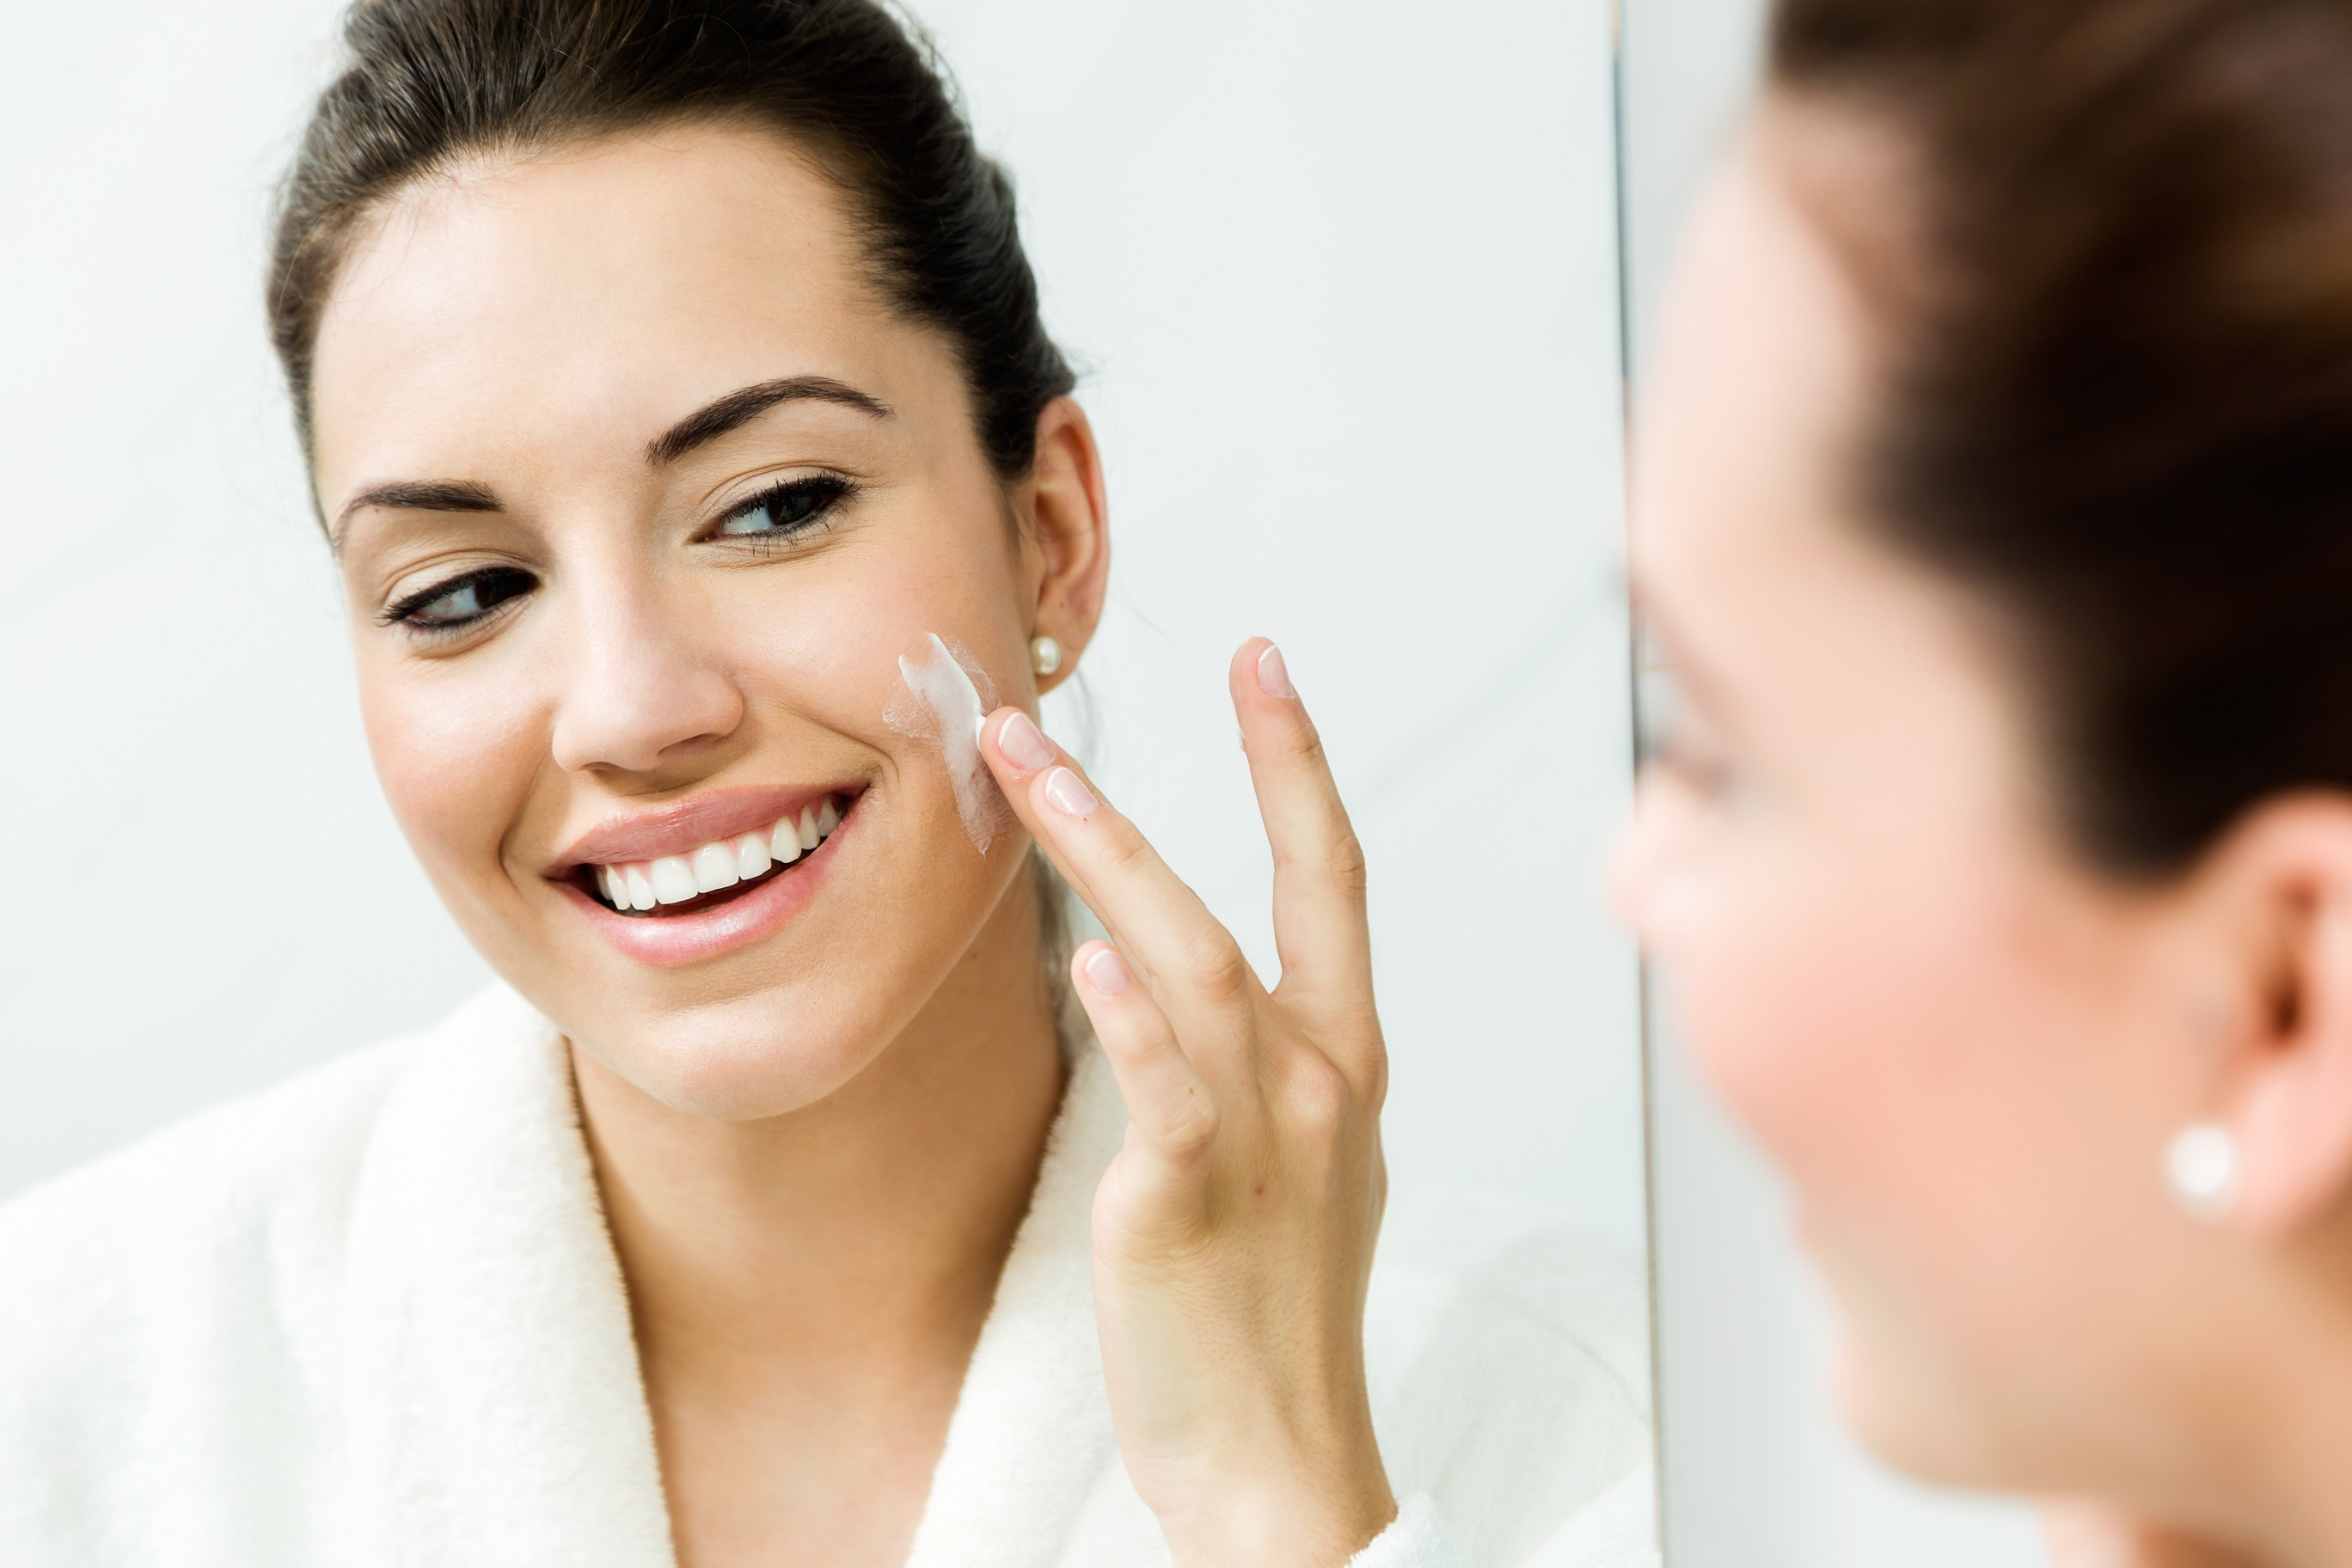 moisturizer Benefits of Using Moisturizer moisturizer 1